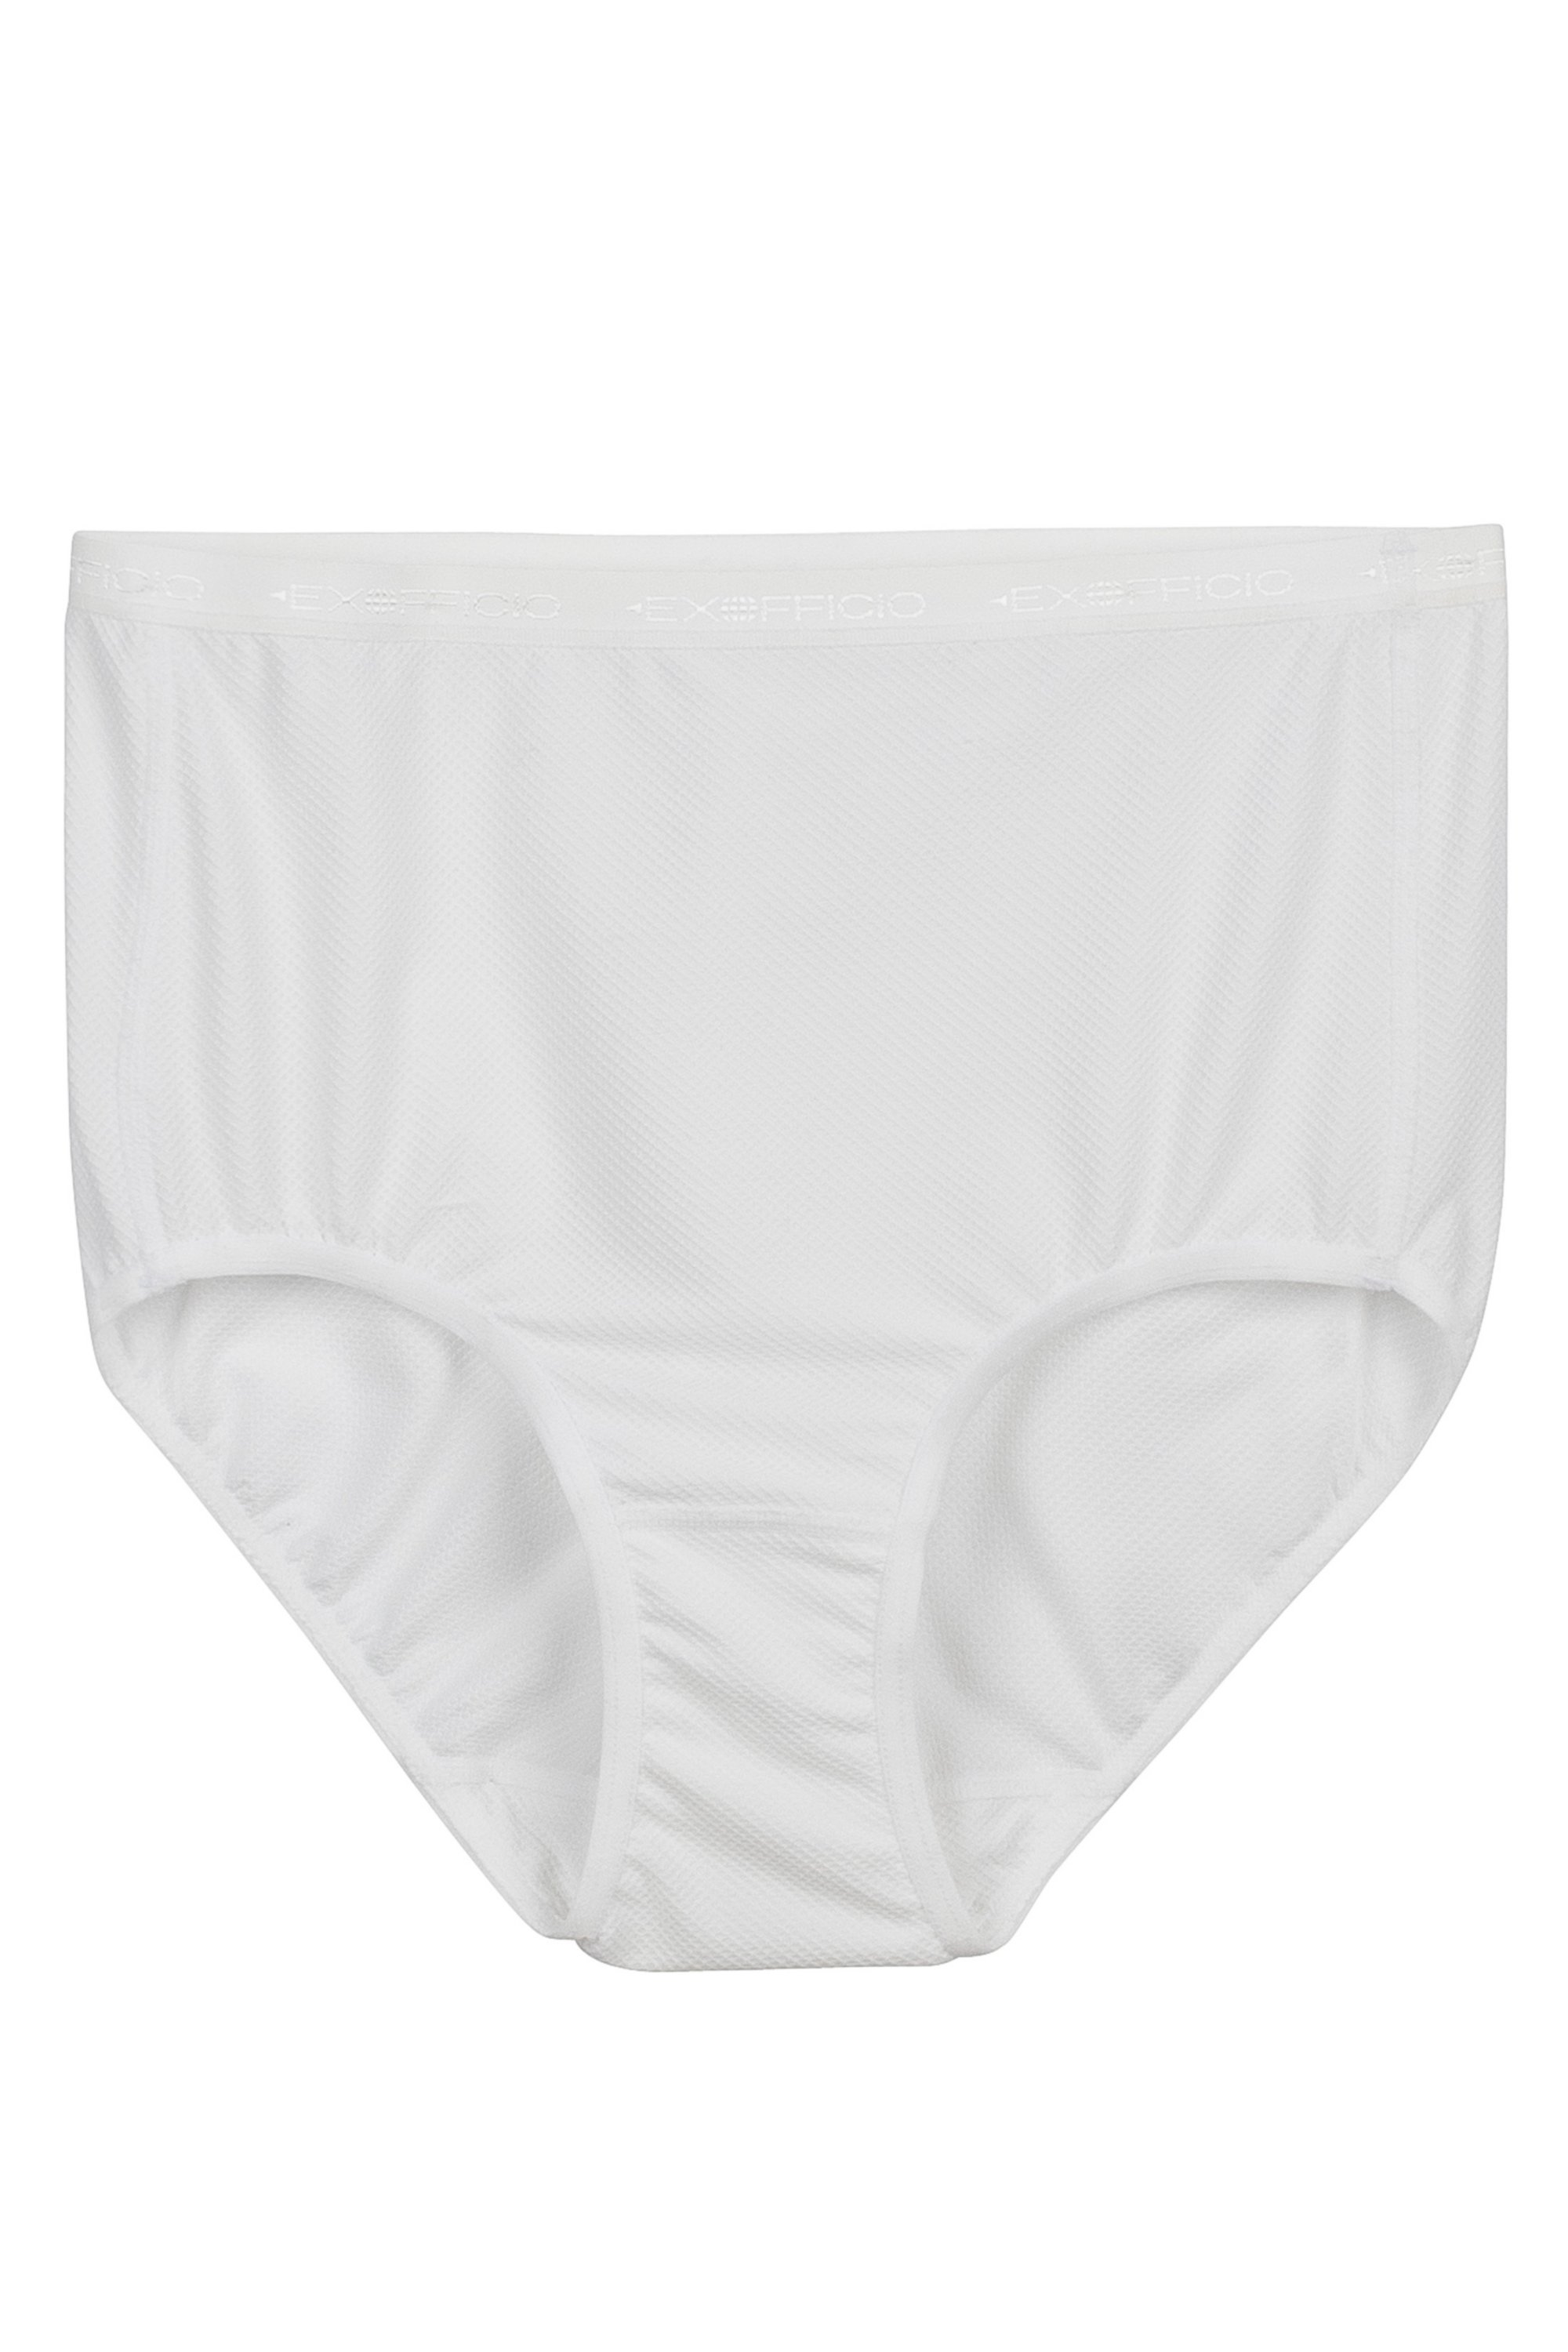 fd5fd259b9 image of Give-N-Go Full Cut Brief with sku 2241-1127